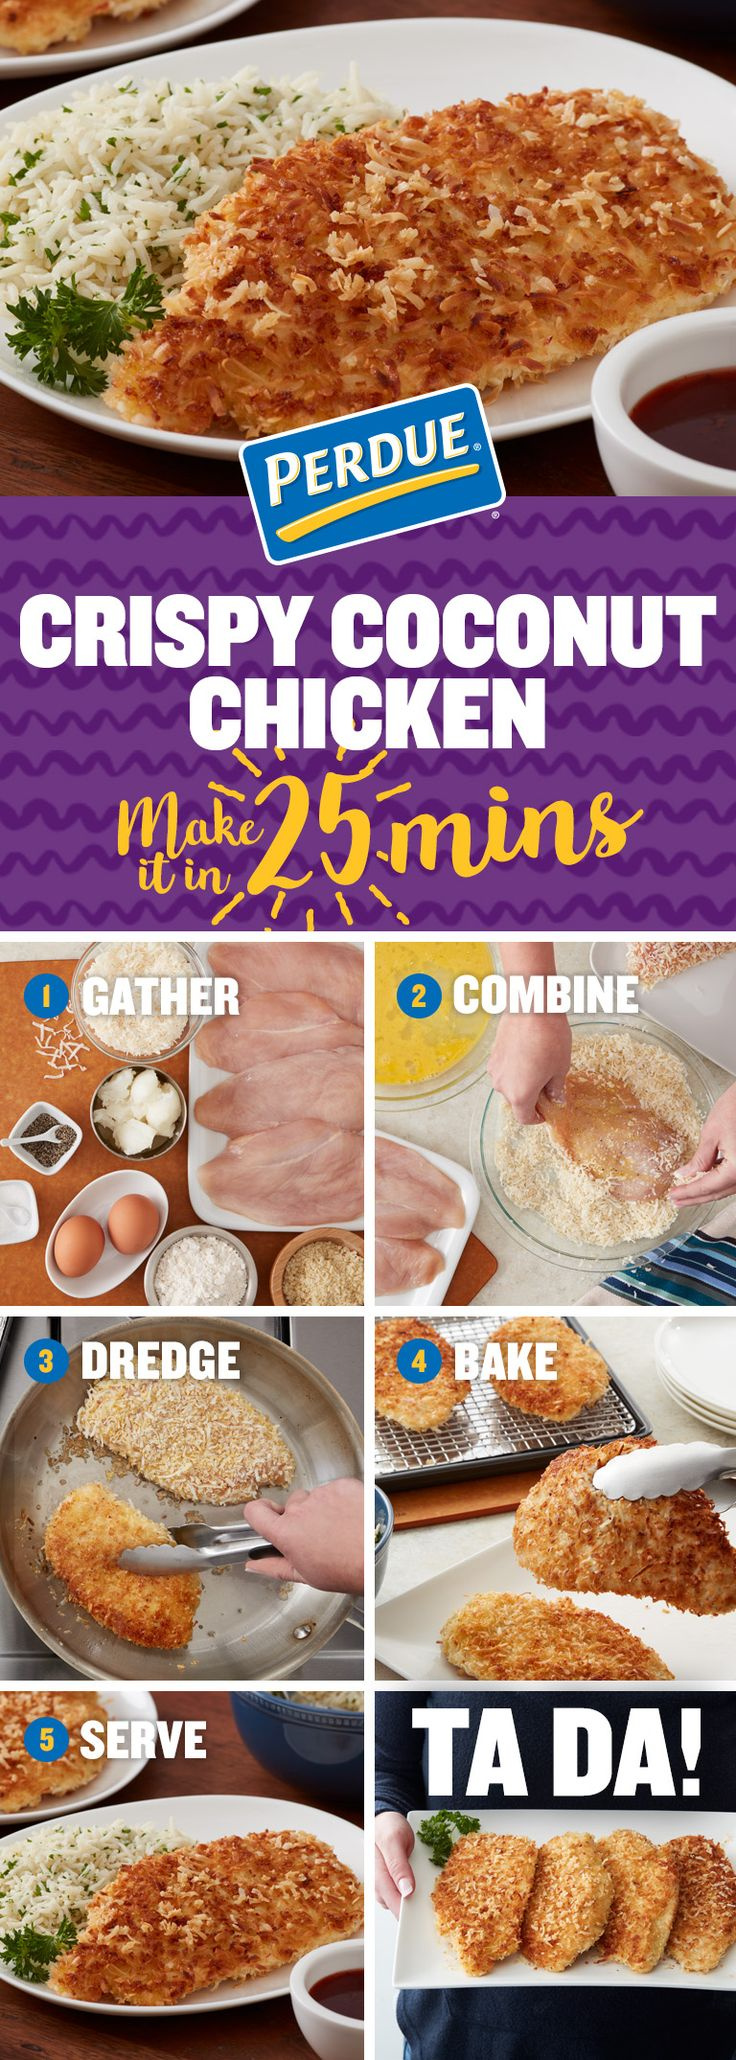 In less than thirty minutes you can make delicious panko breaded Crispy Coconut Chicken using PERDUE® PERFECT PORTIONS® Boneless Skinless Chicken Breast. Click the image for the full recipe.